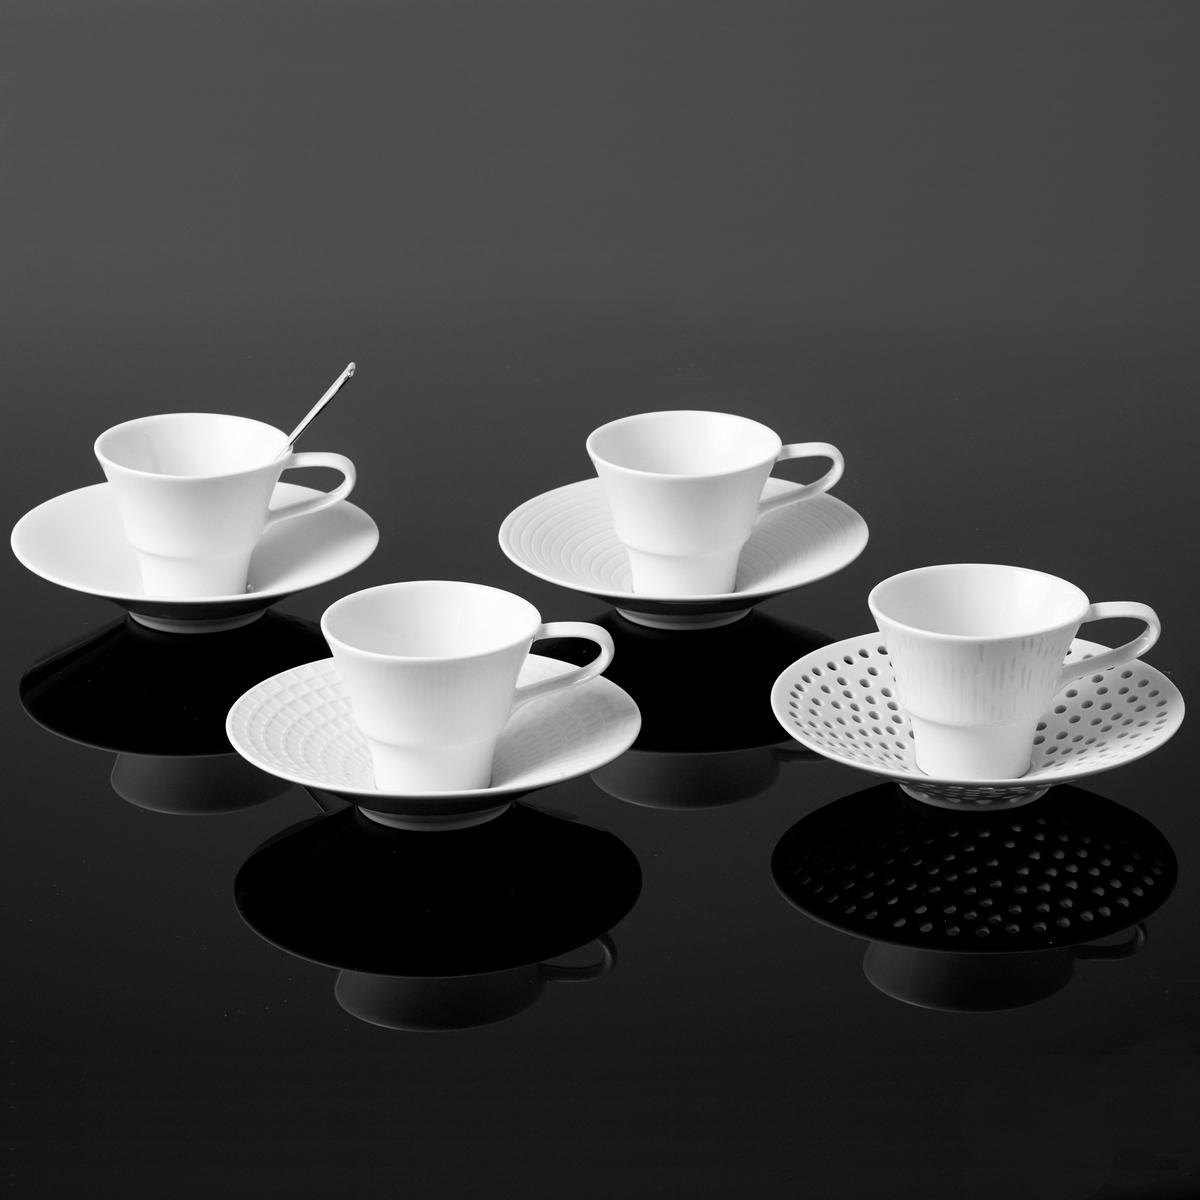 hering berlin hering set of 4 espresso cups and saucers. Black Bedroom Furniture Sets. Home Design Ideas